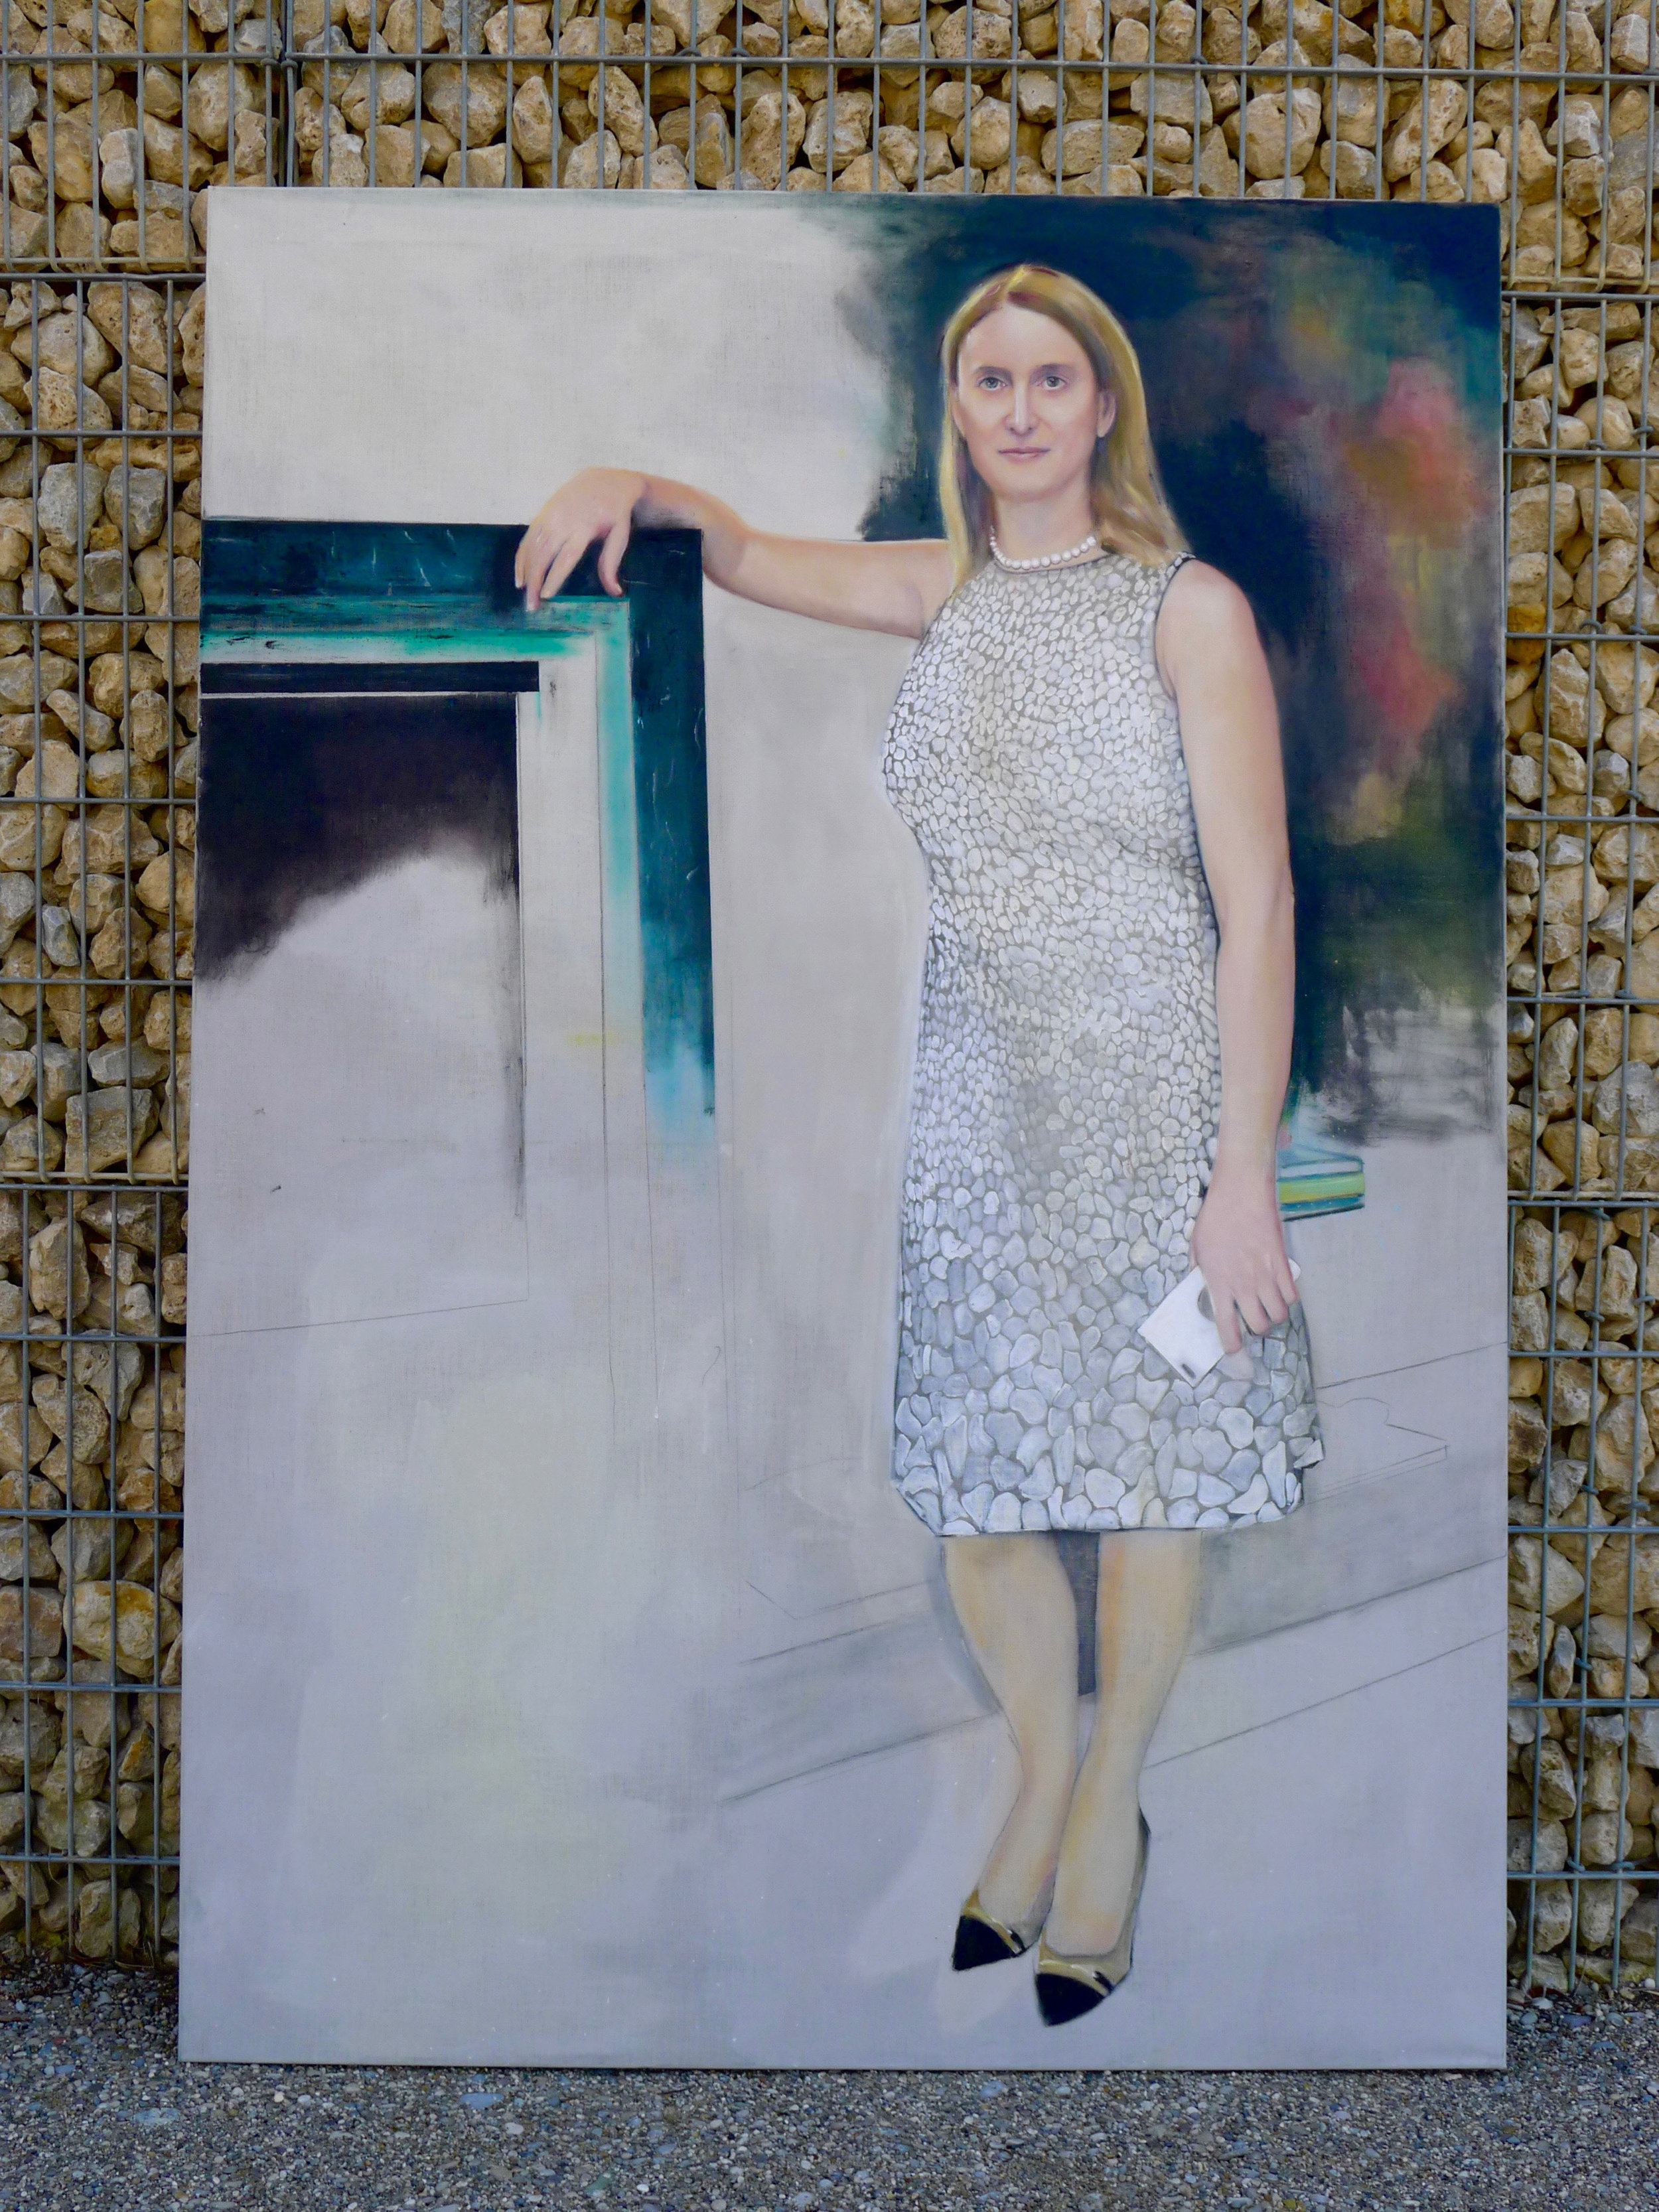 Ms Bea Knecht, Oil on canvas, 200x140cm - in progress